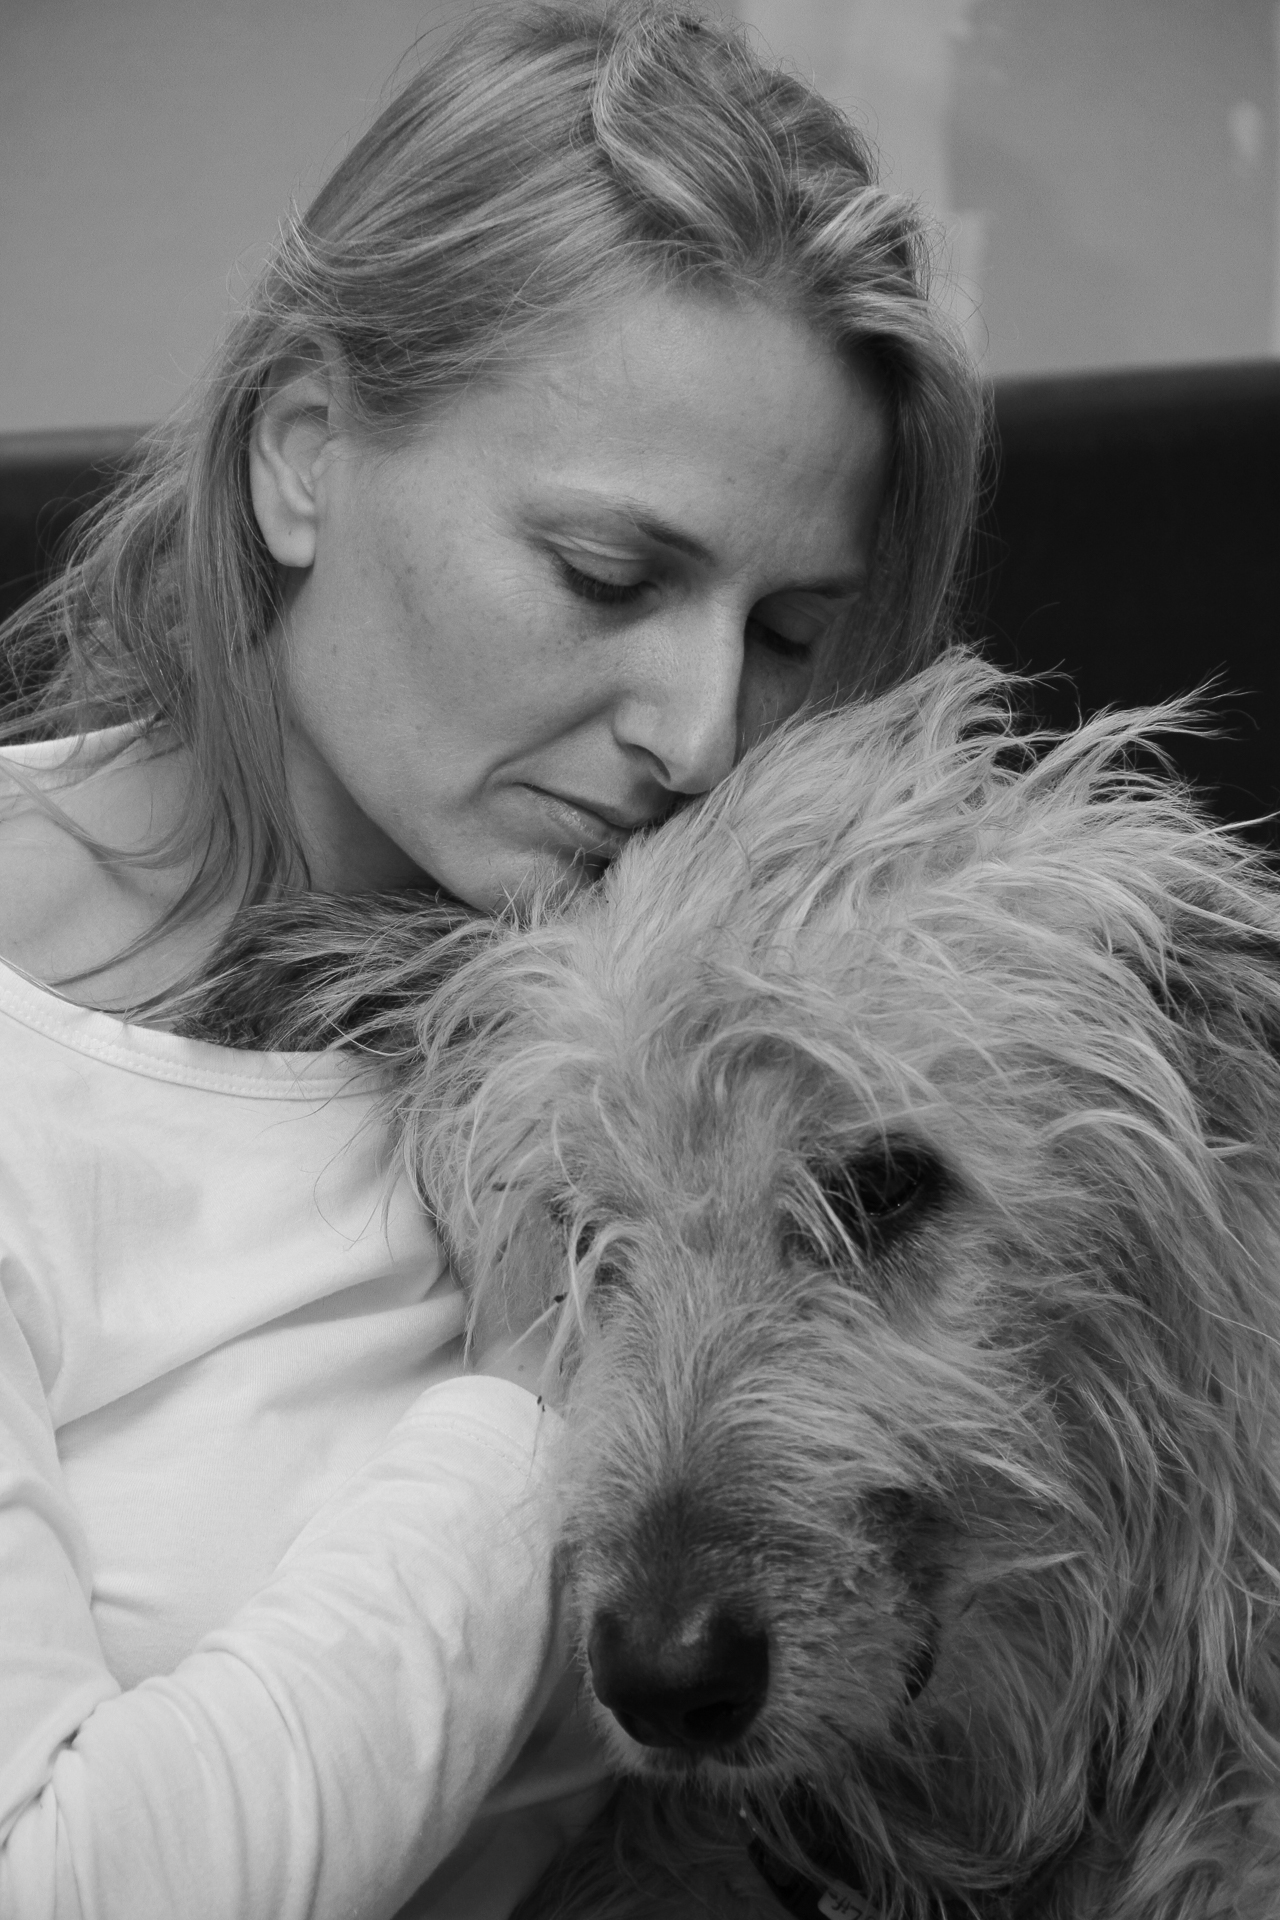 Two of my favourites! Liz and Dilbert (my Irish Wolfhound, whose real name was Della) share a cuddle on the sofa. The Black & White head & shoulders shot shows Liz (eyes closed) rubbing Dilbert's ear as Dilbert pushes into Liz's shoulder. Taken in France in 2011.